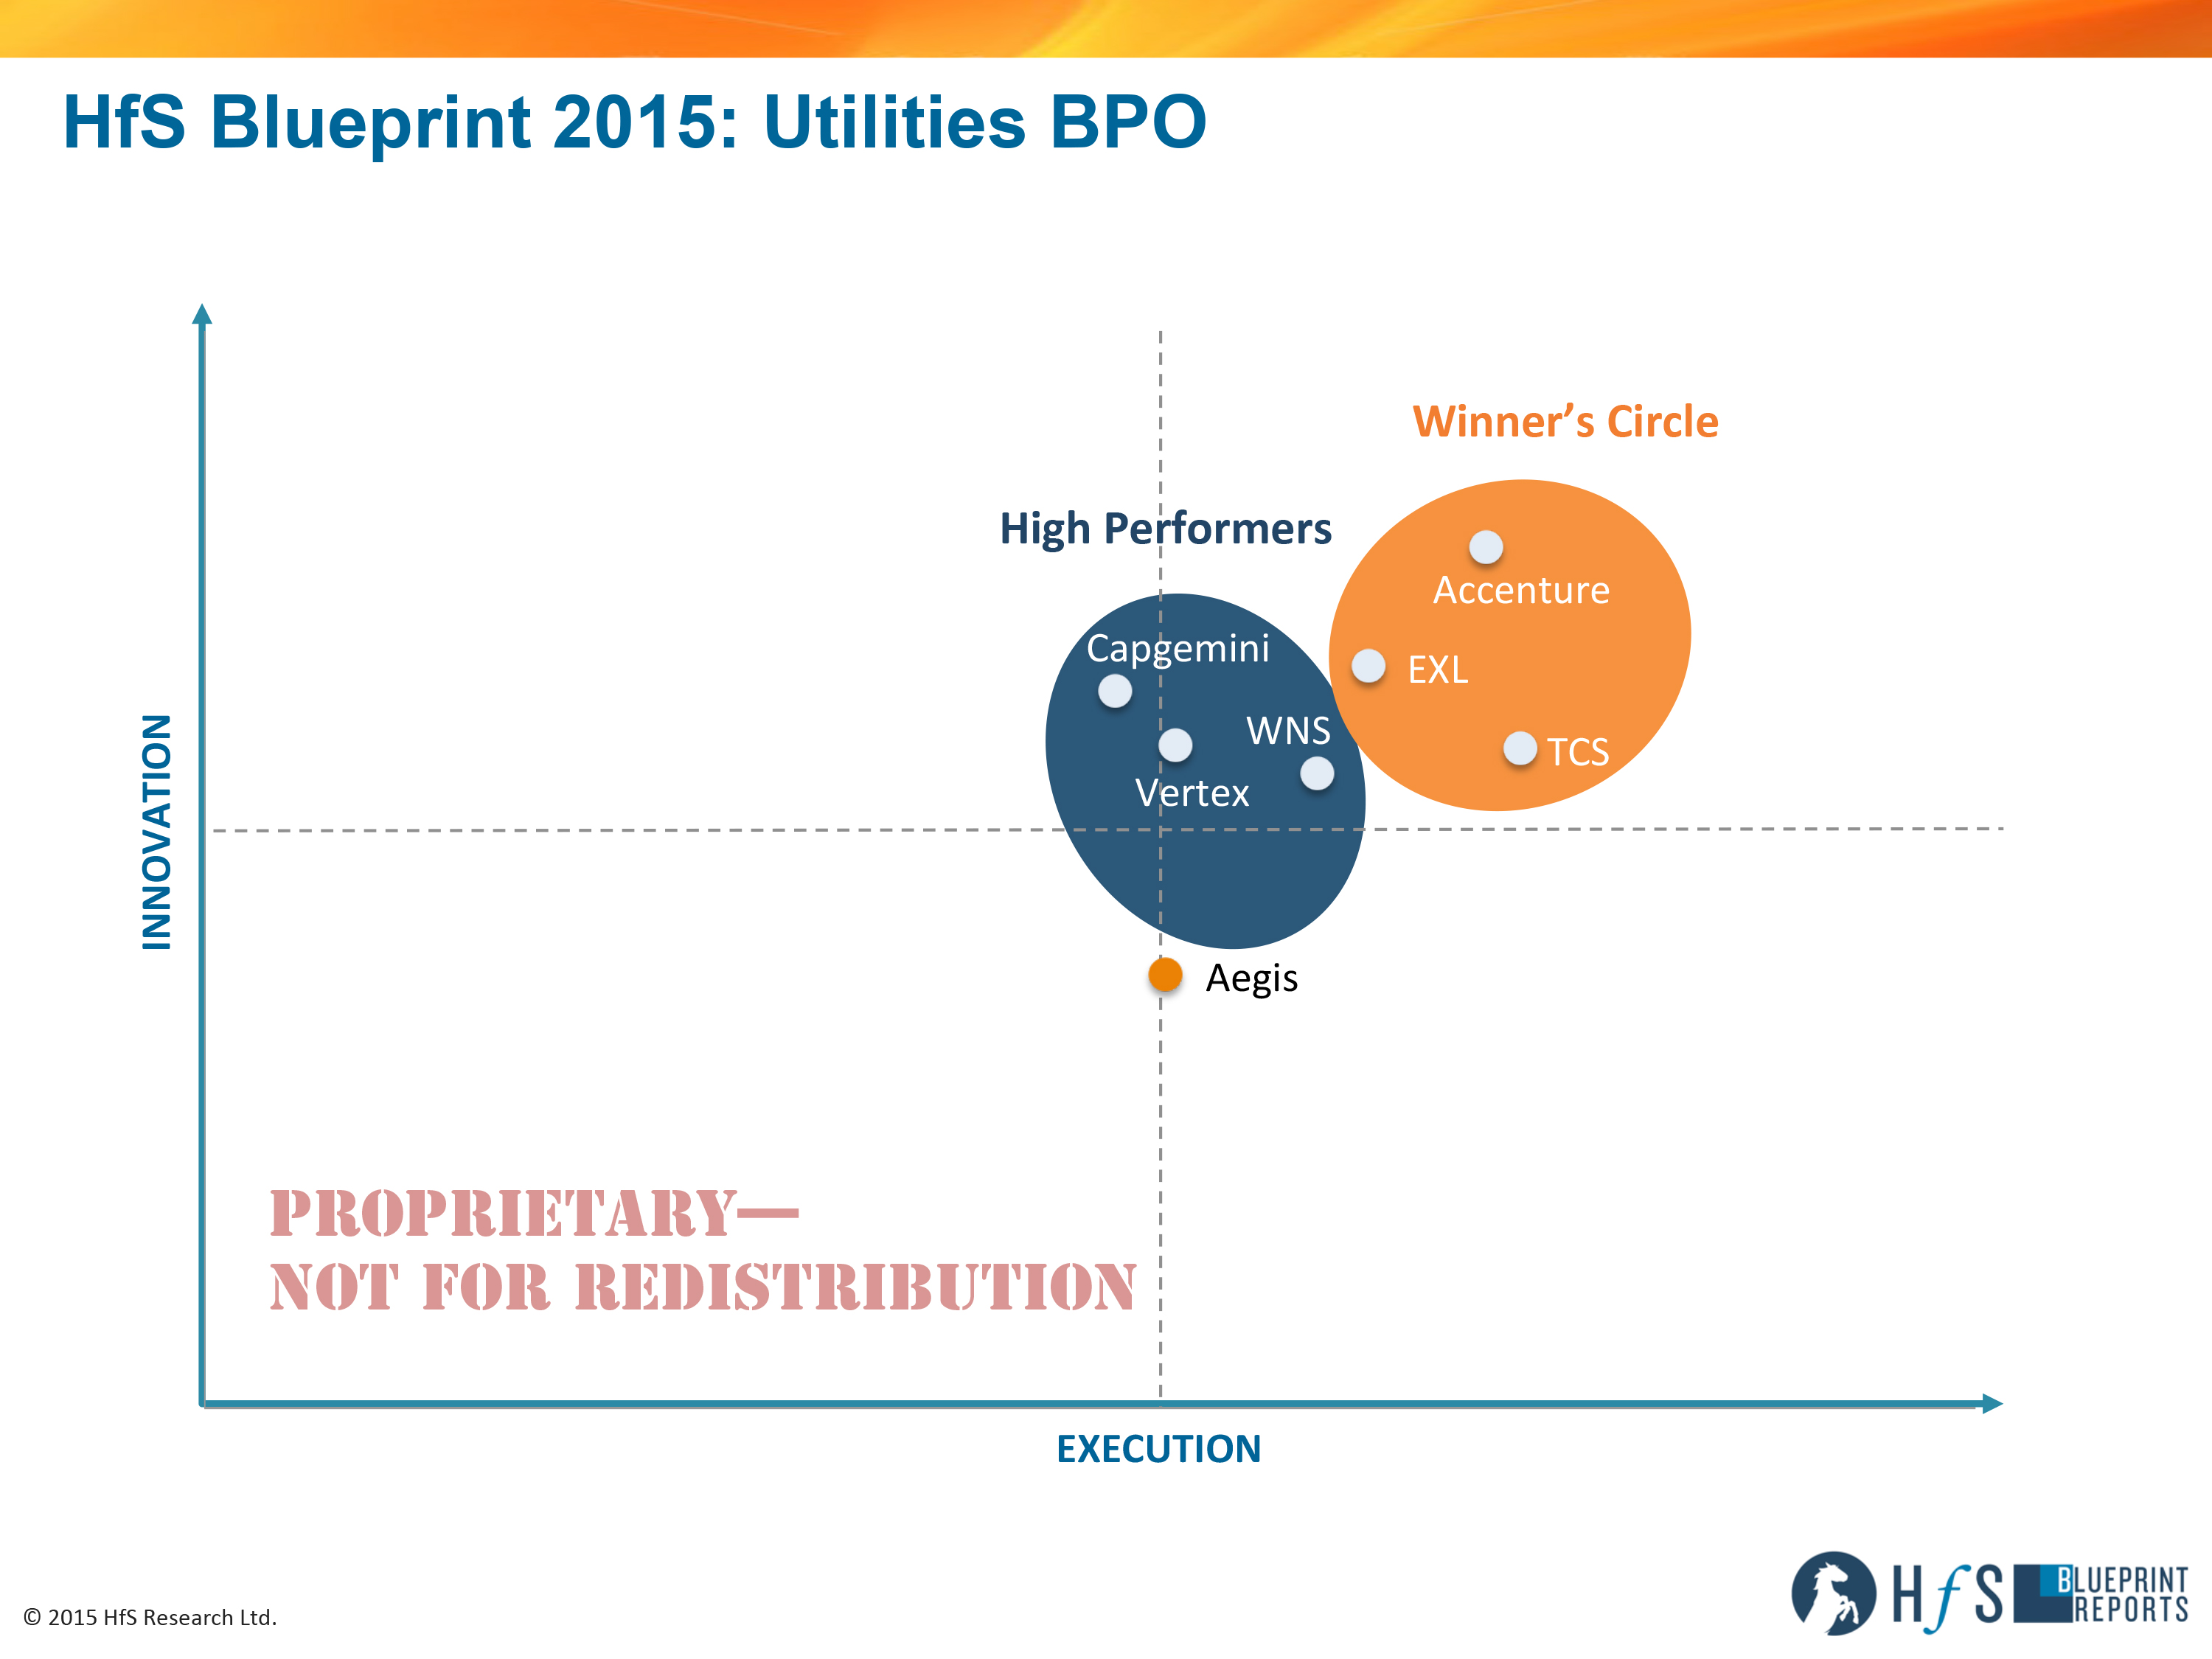 RS_1512_HfS-Blueprint-Utilities-BPO-2015--BLOG-AXIS